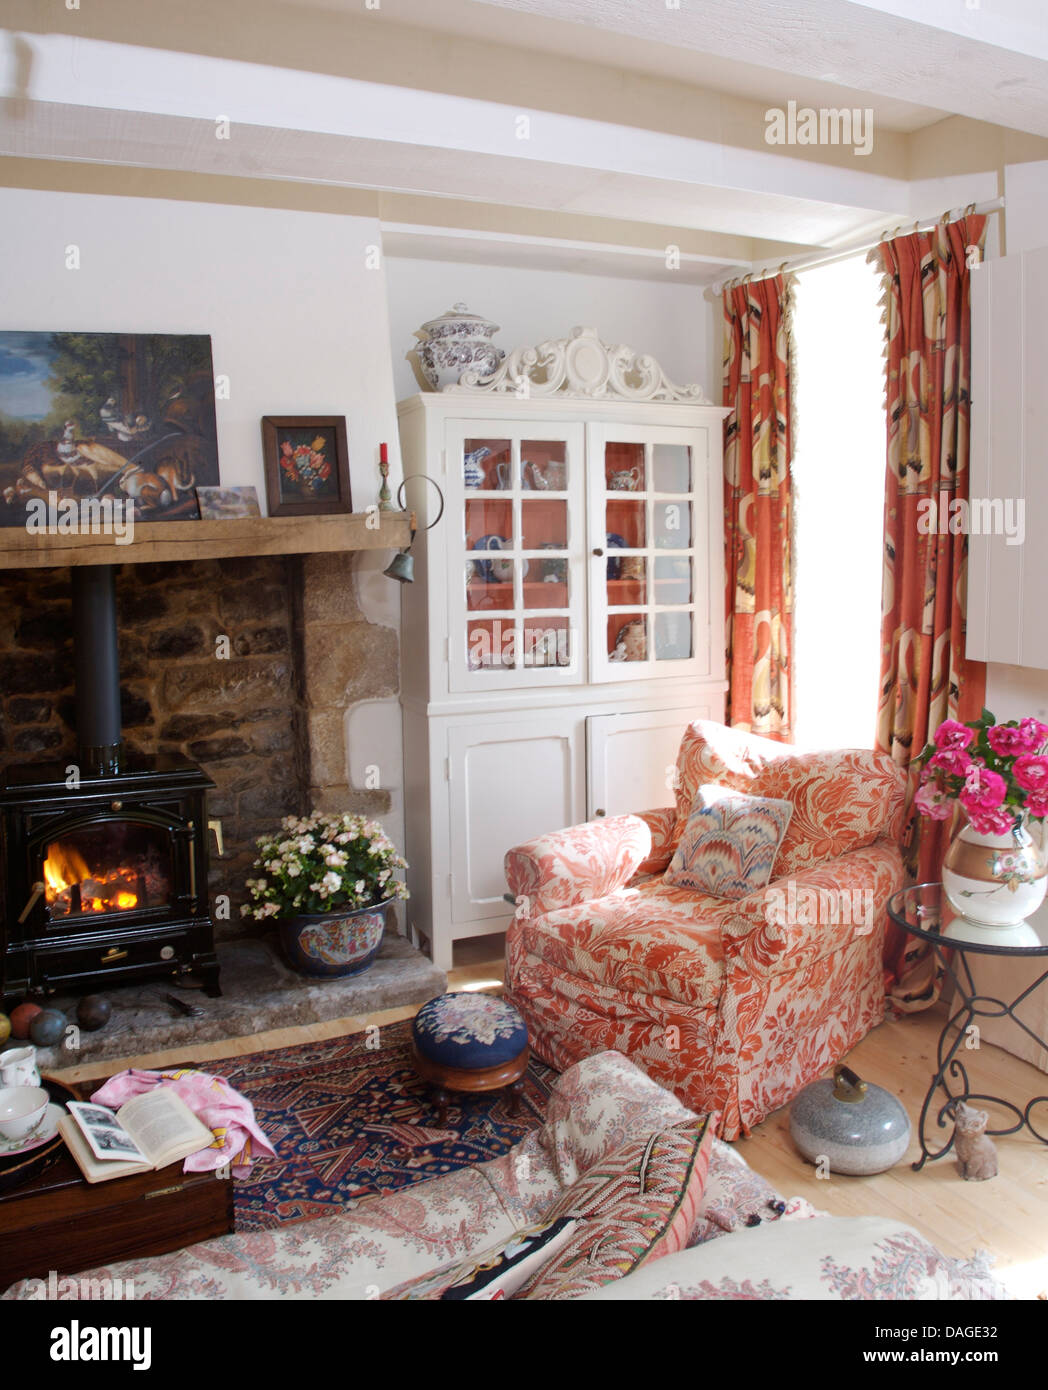 pink white armchair beside fireplace with wood burning stove in